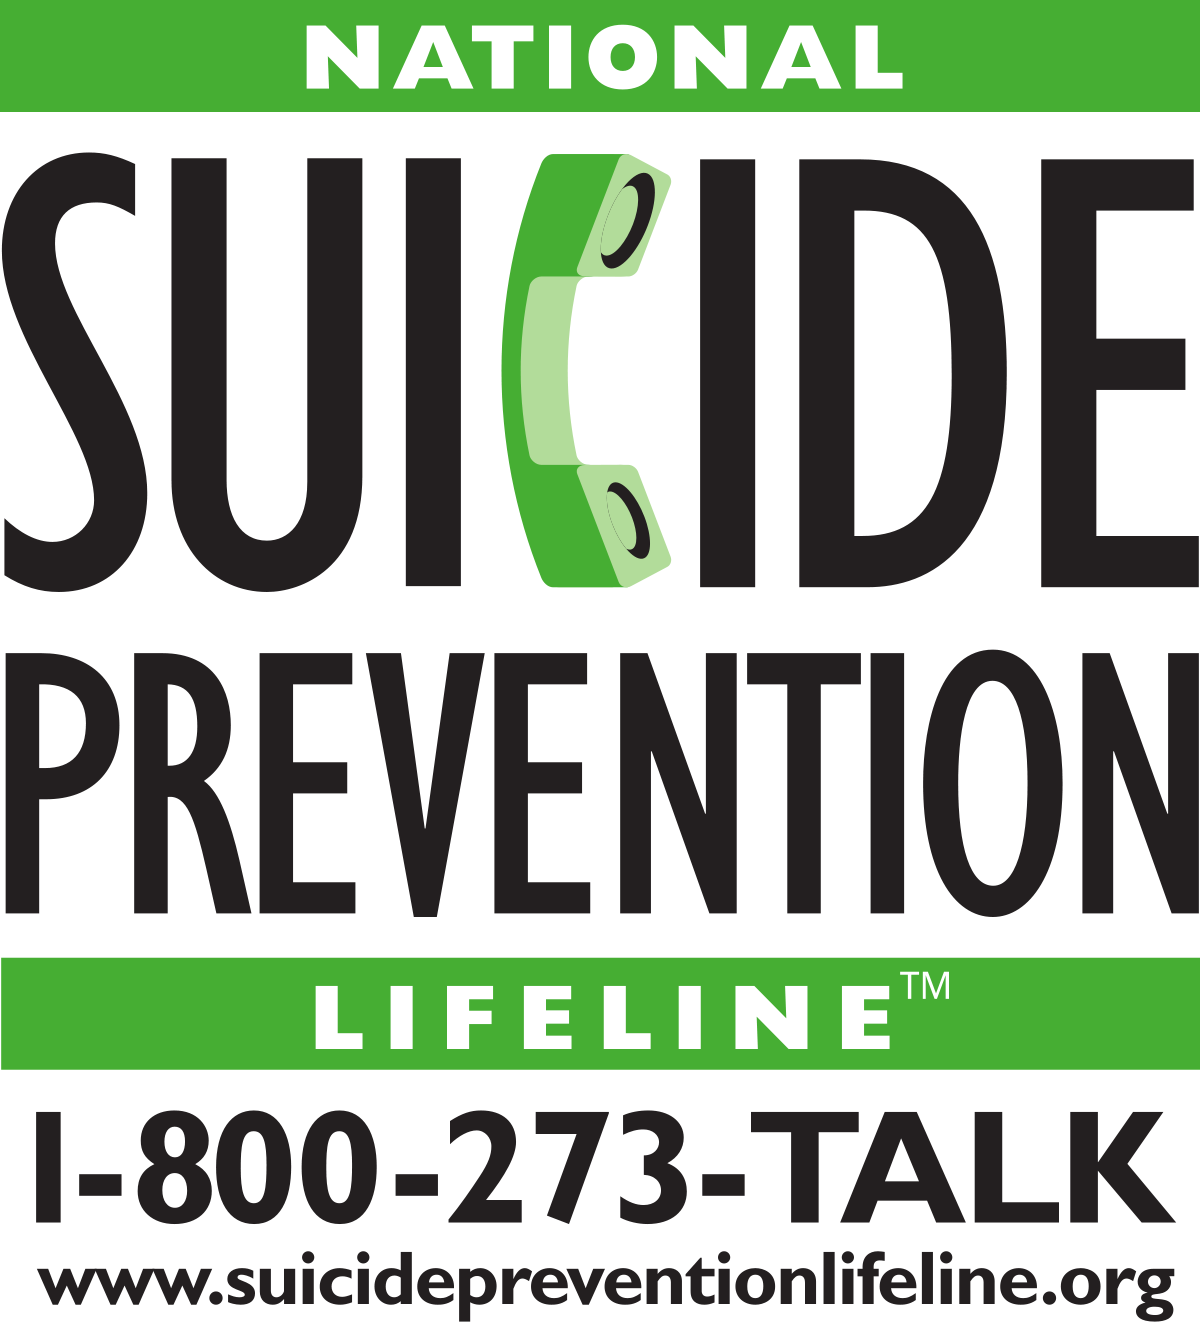 Image of National Sucide Prevention Hotline Logo